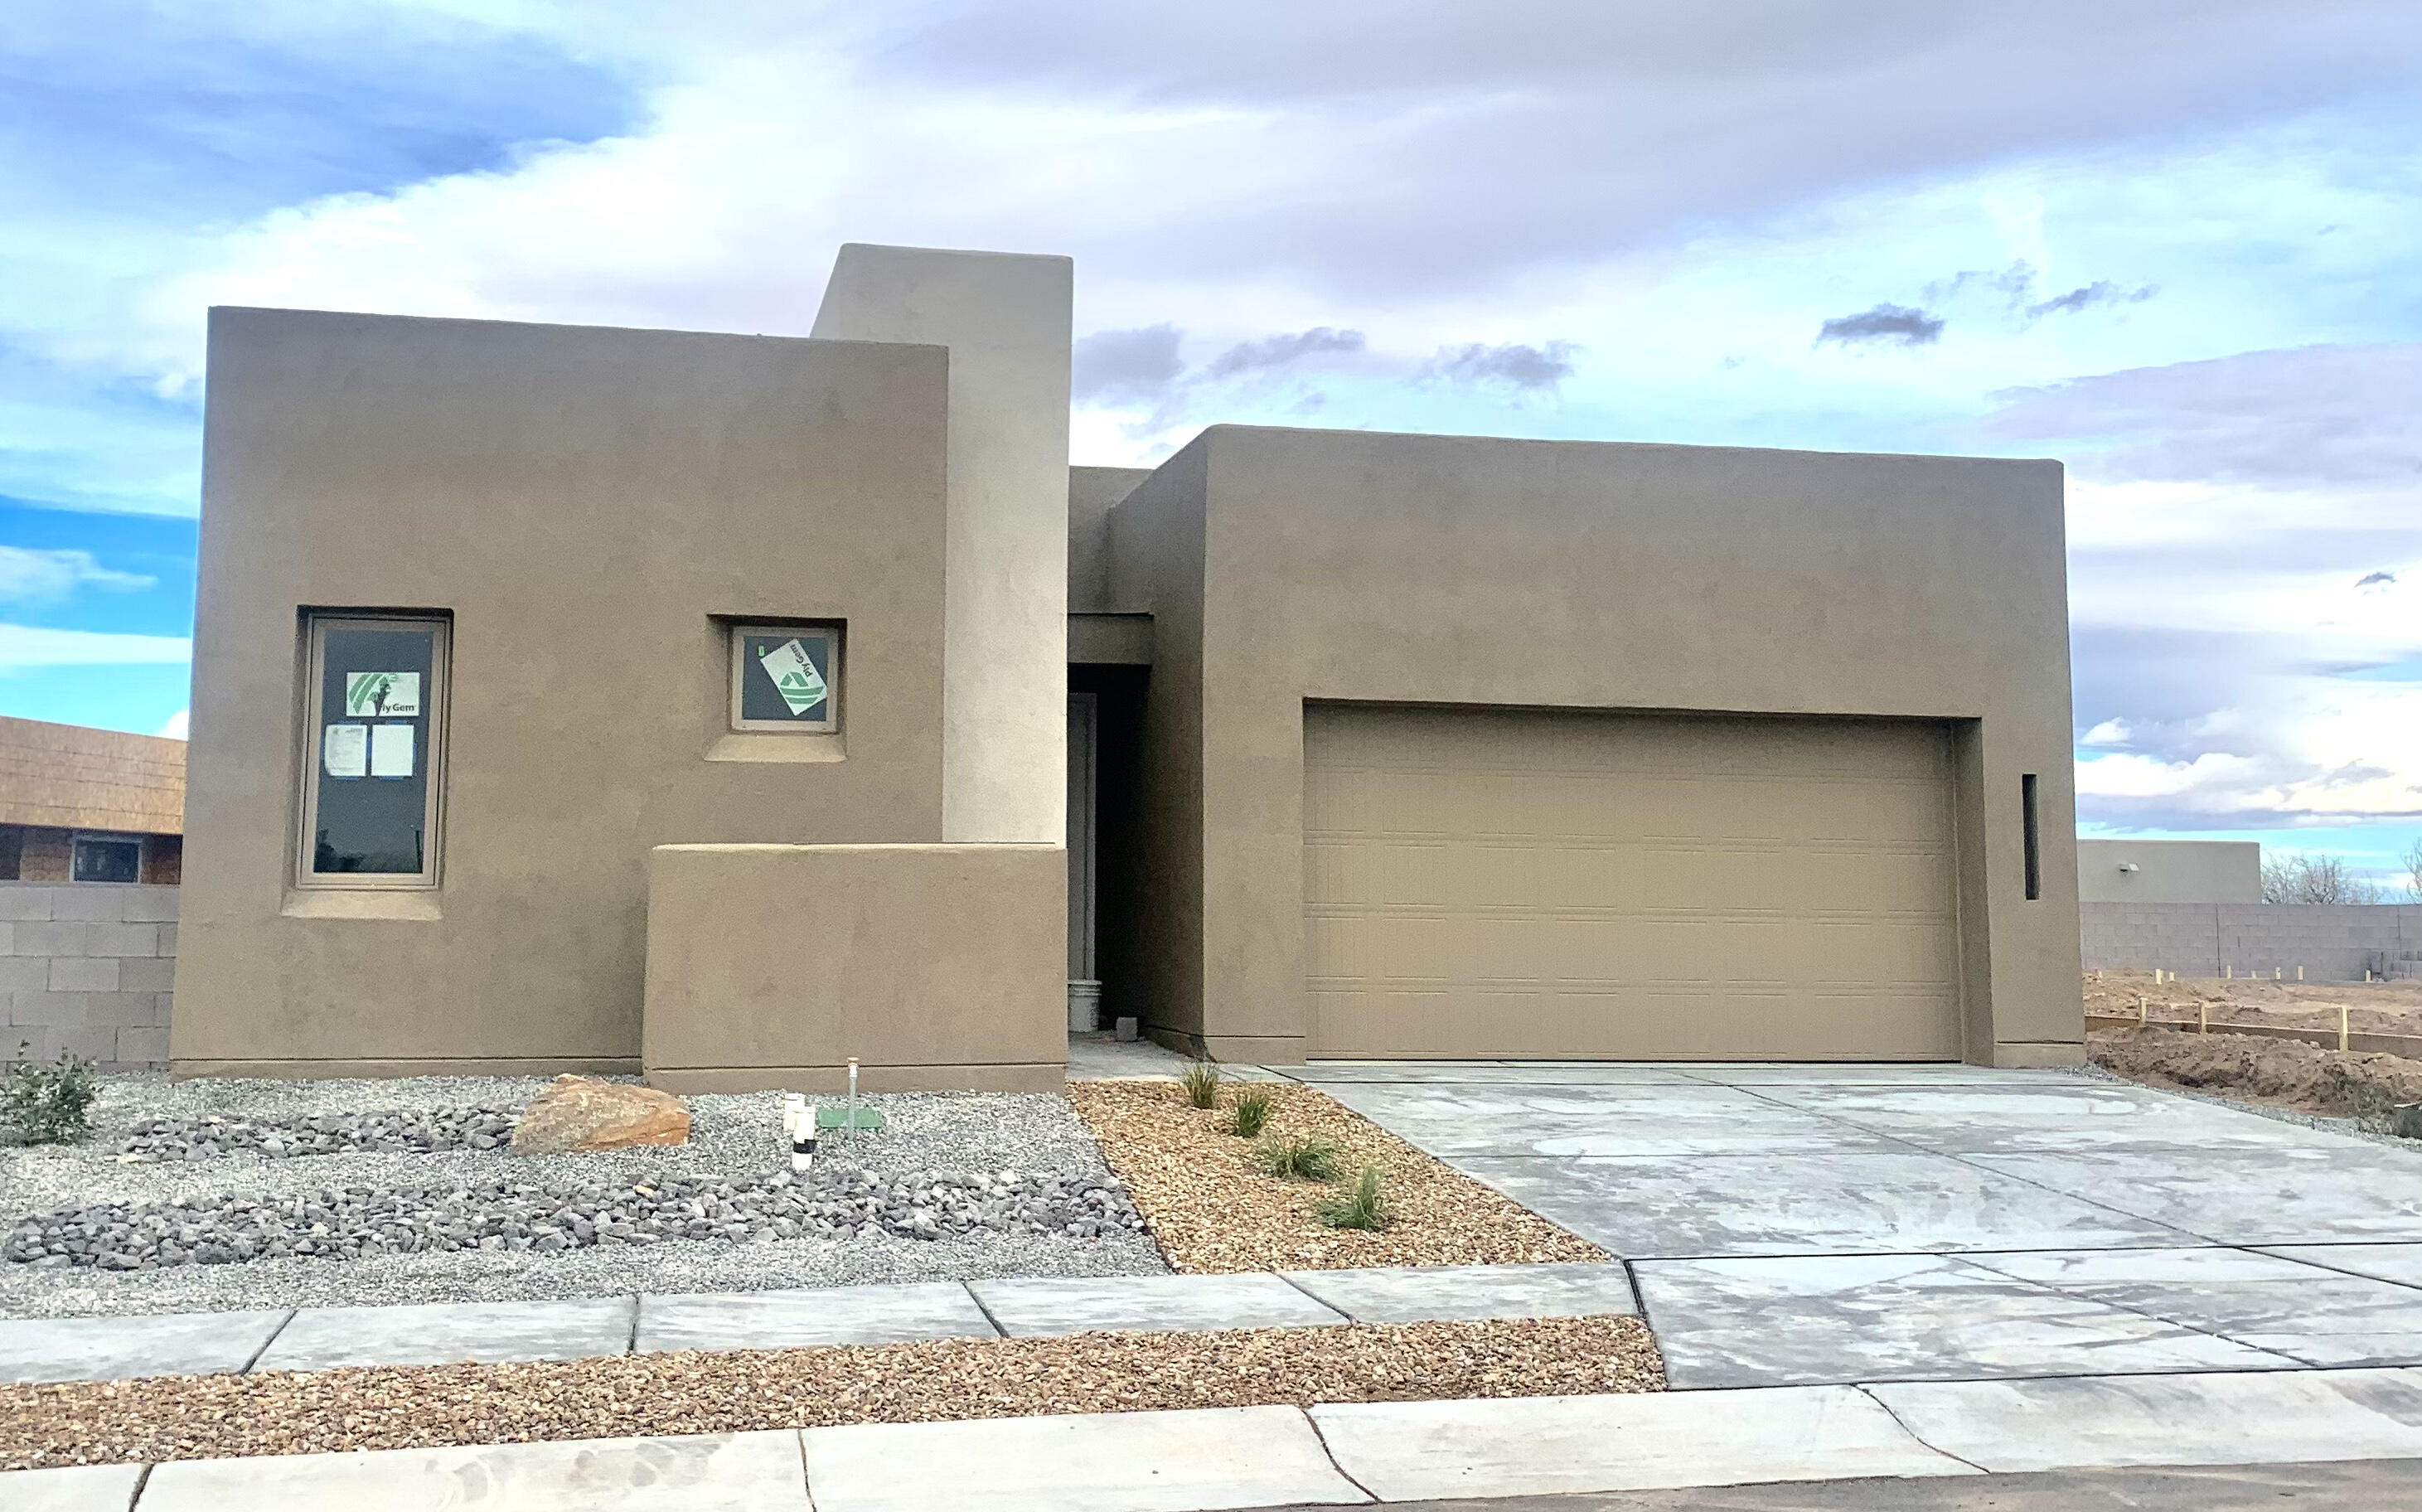 Another Gorgeous Abrazo Home.  The Eileen located in Ascension at Balloon Fiesta Park, a gated community.   The Eileen includes 2037 sf with 12 ft ceiling in great room an clearstory windows for plenty of light. Cabinetry, tile and countertop upgrades throughout along with 8ft sliding patio door and deck option.